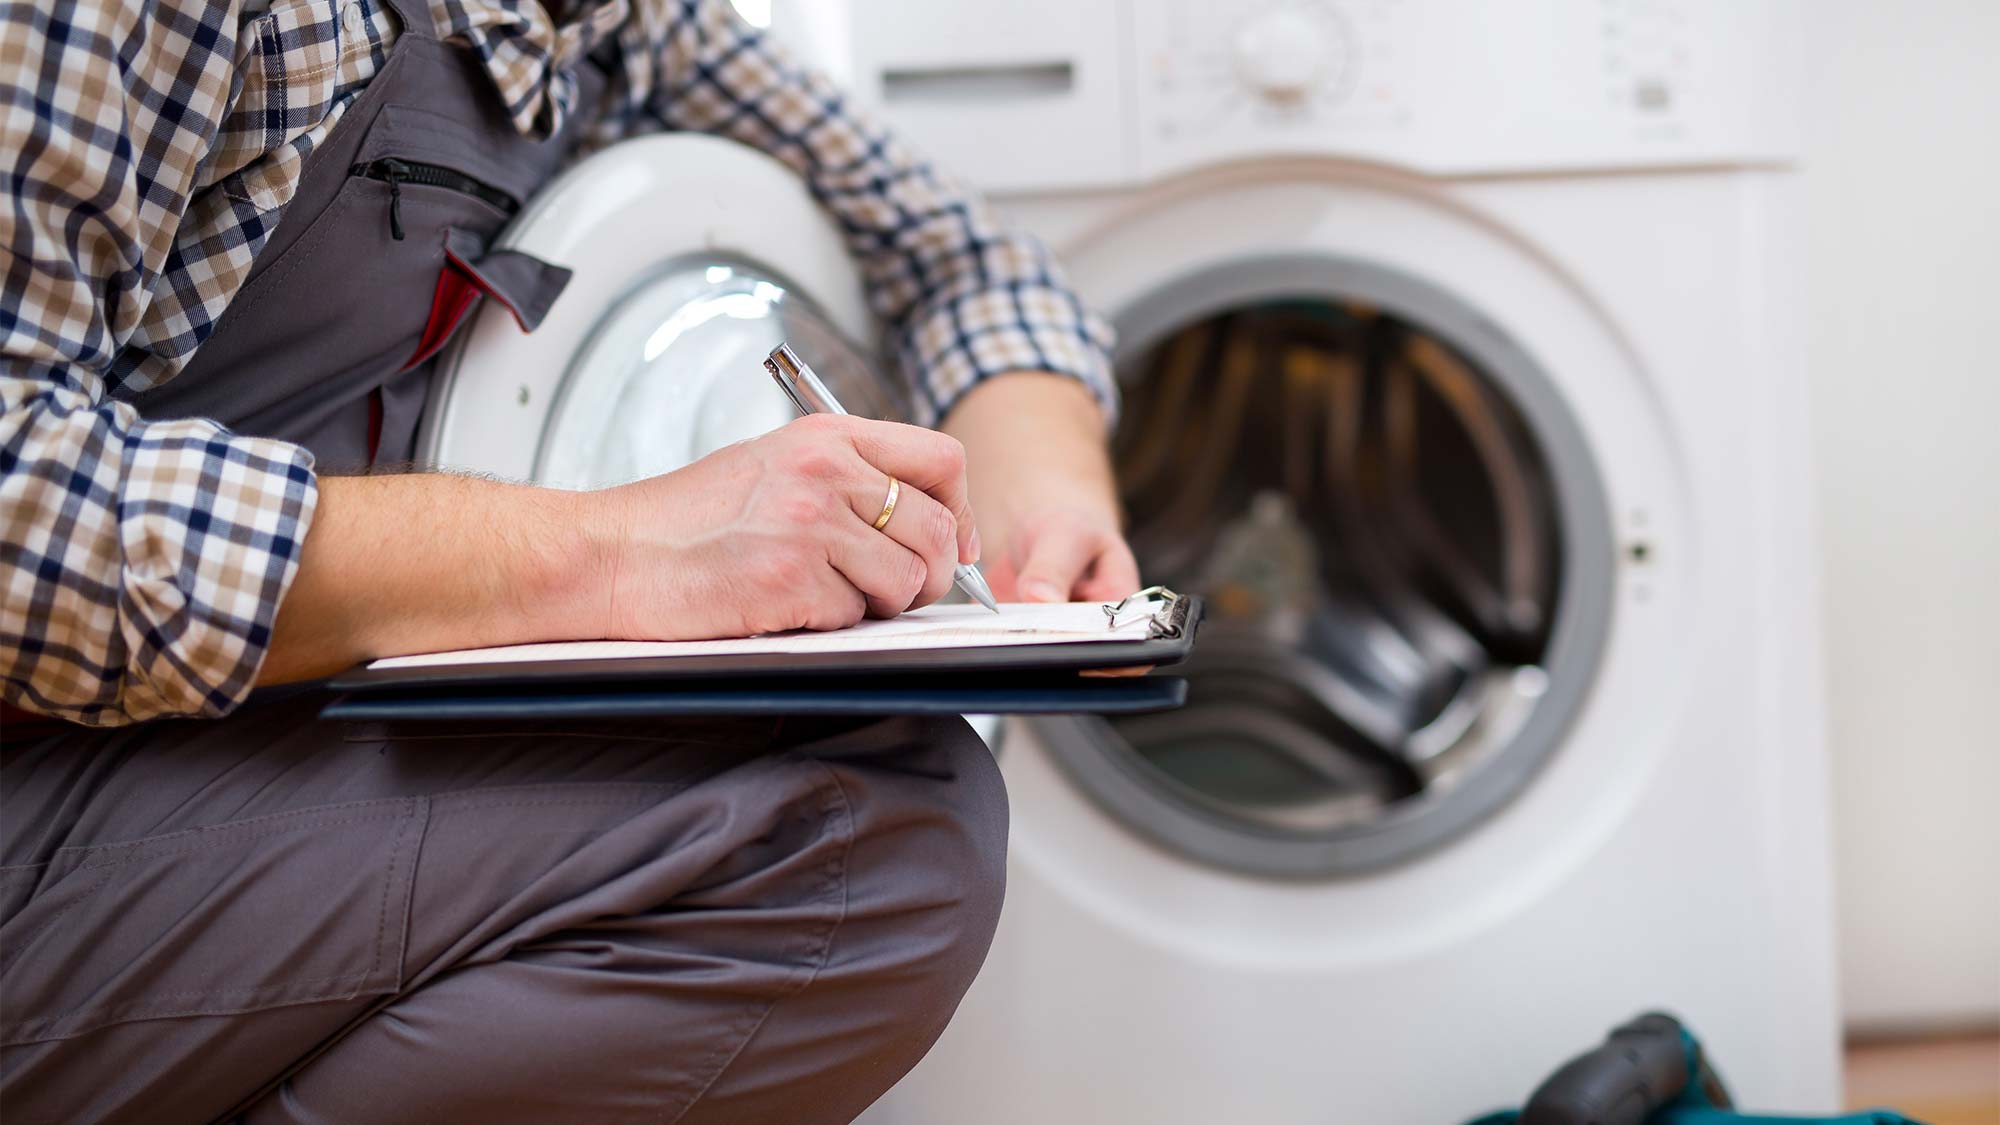 Why should i buy a home appliance warranty